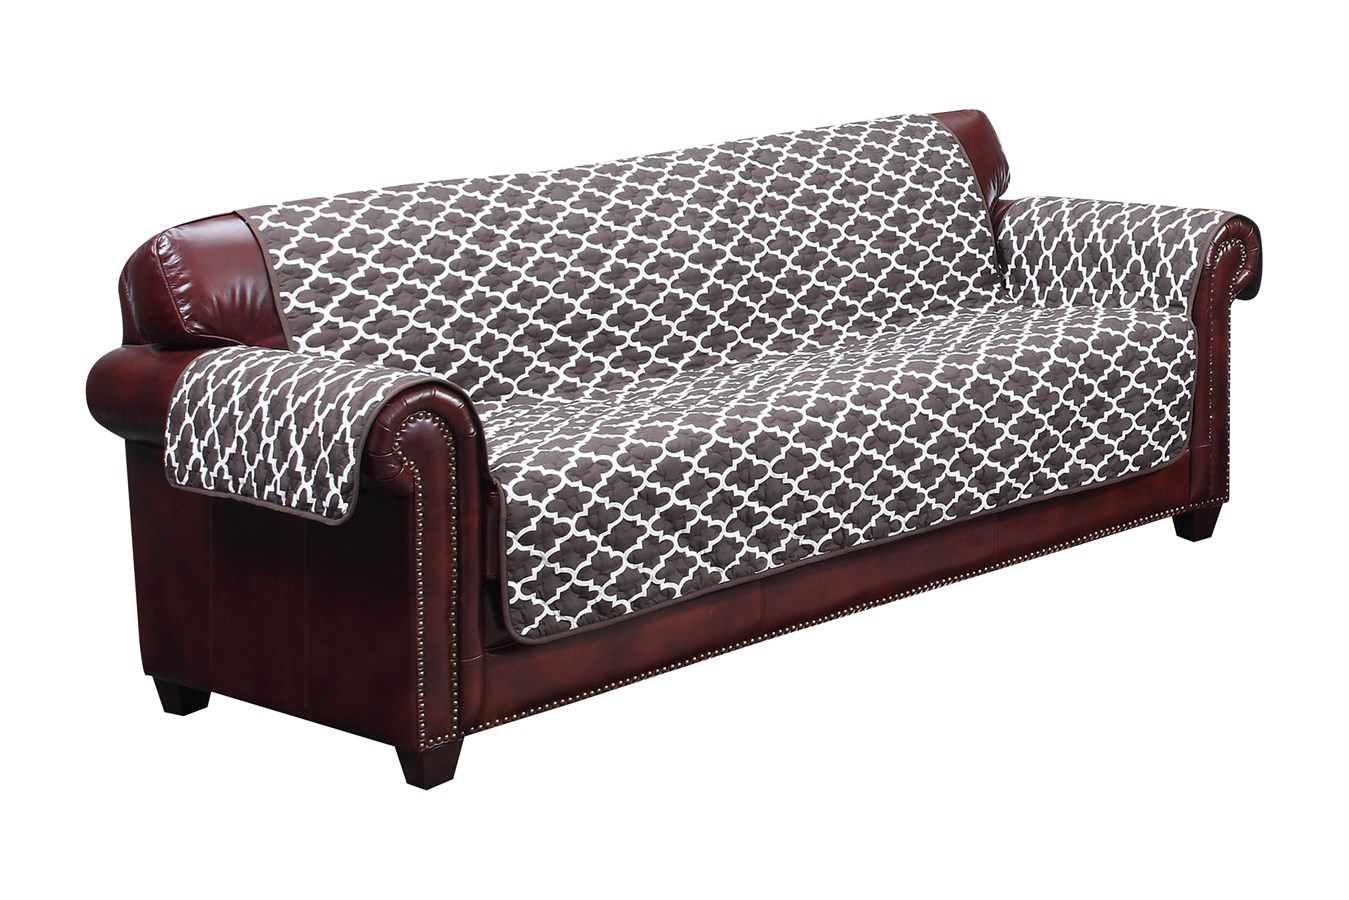 sectional sofa deals free shipping vitra place jasper morrison water resistant cover jane